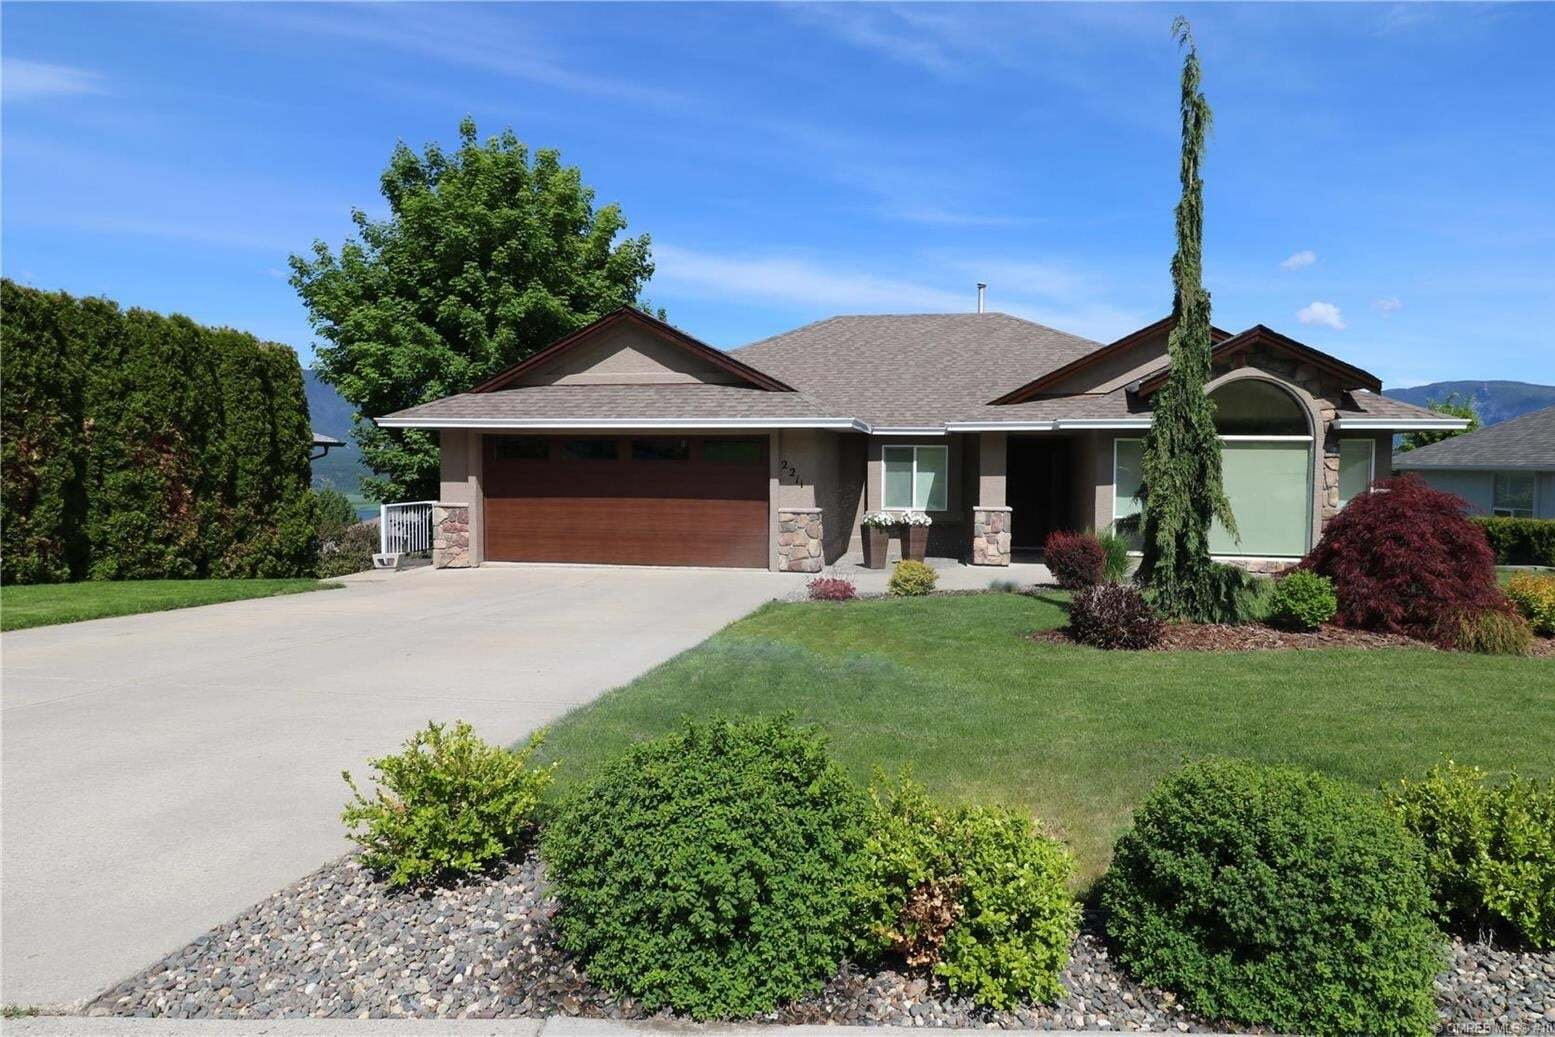 House for sale at 2211 4 Ave Southeast Salmon Arm British Columbia - MLS: 10207195